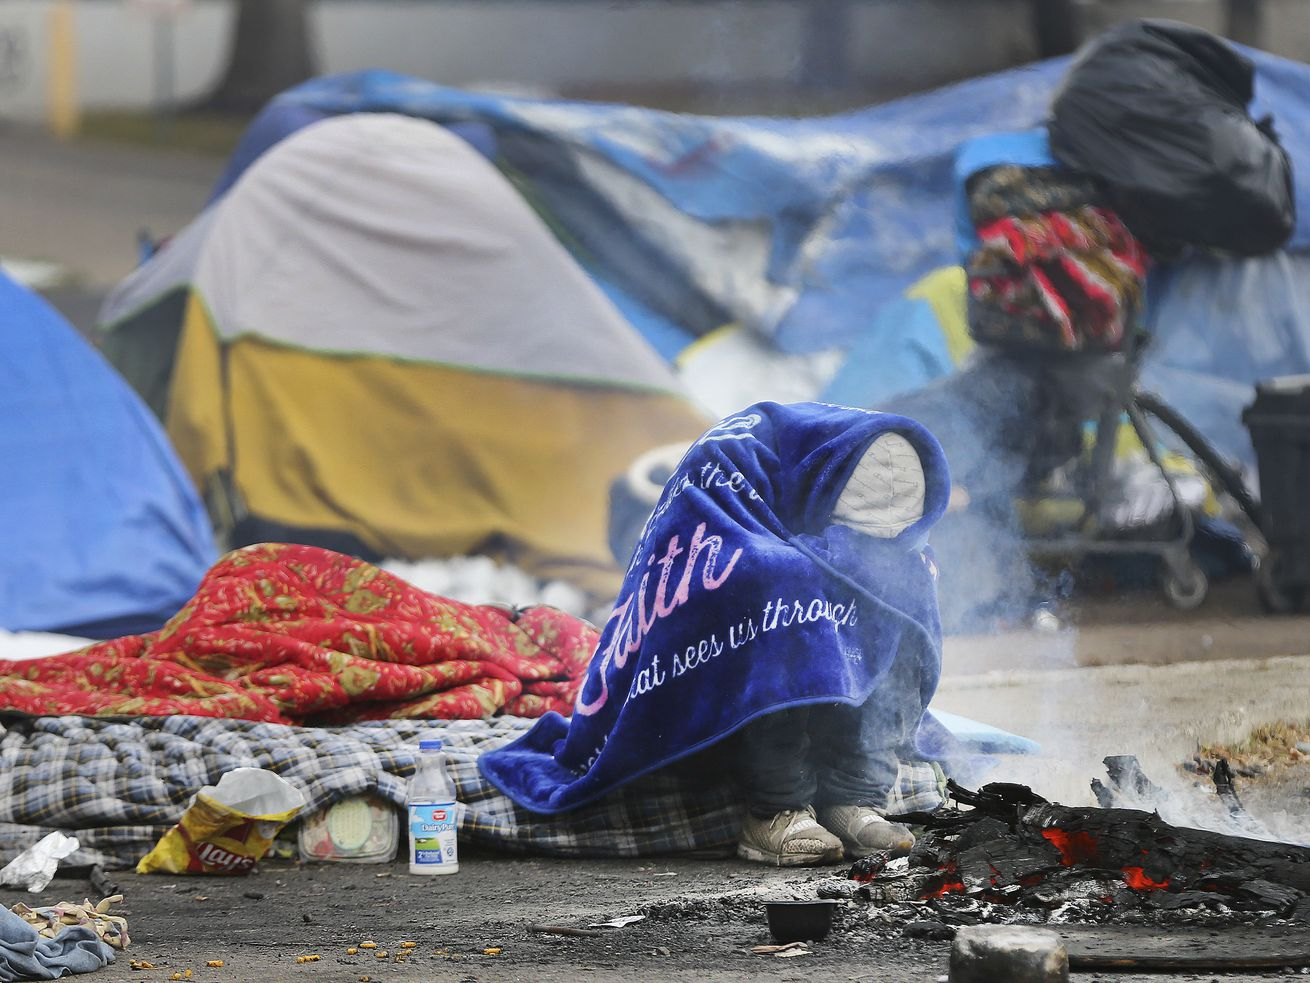 In our opinion: Winter is here, and Utah's homeless need help